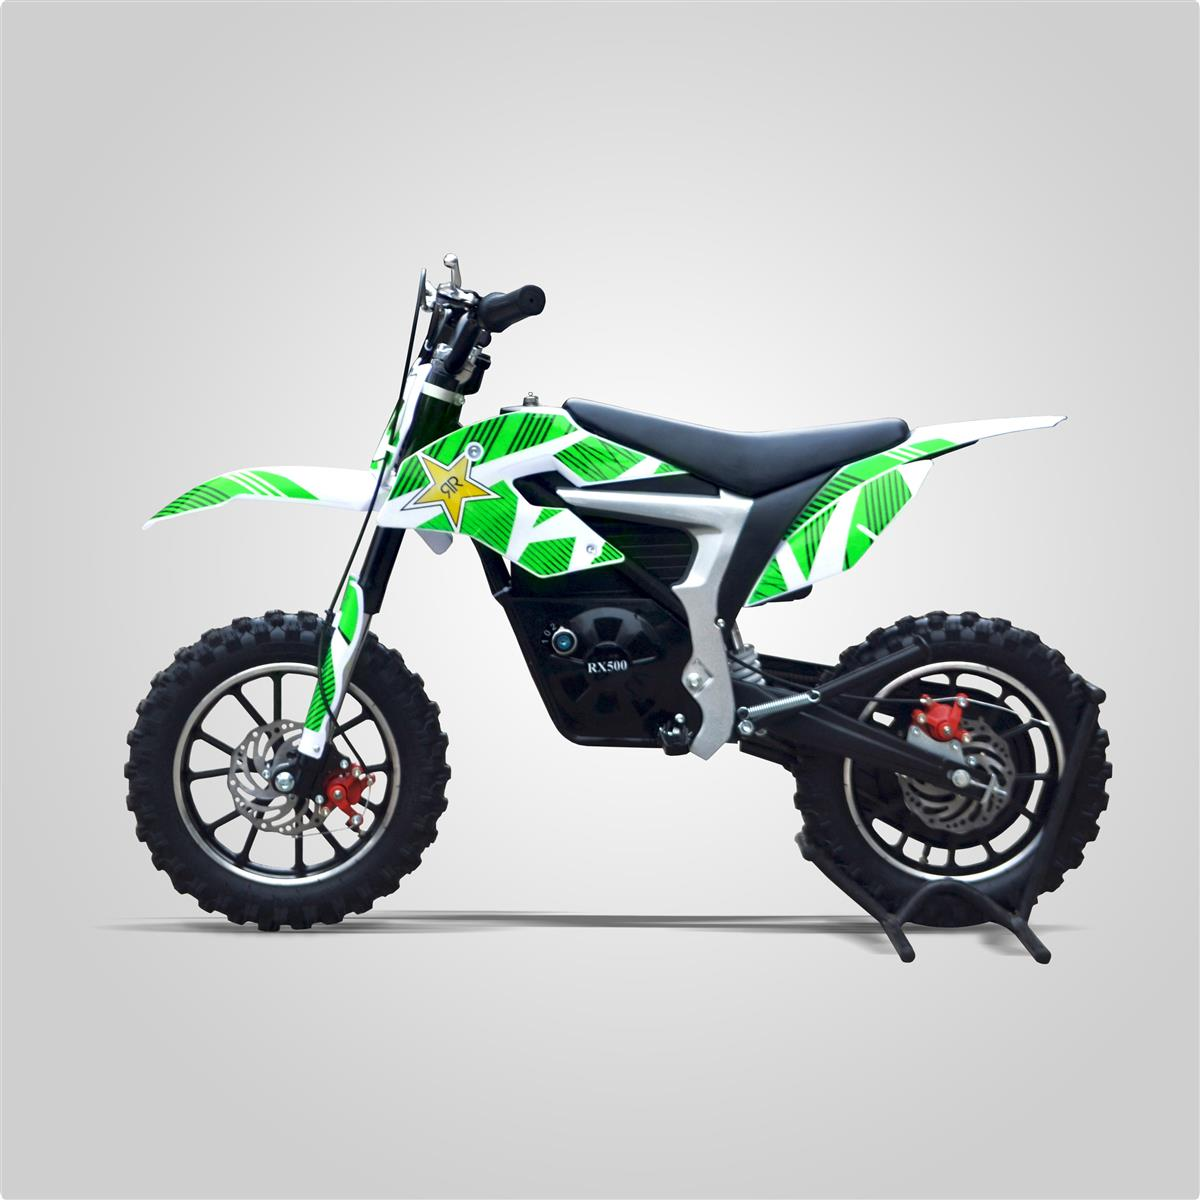 pocket cross lectrique rx 500w vert rockstar smallmx dirt bike pit bike quads minimoto. Black Bedroom Furniture Sets. Home Design Ideas